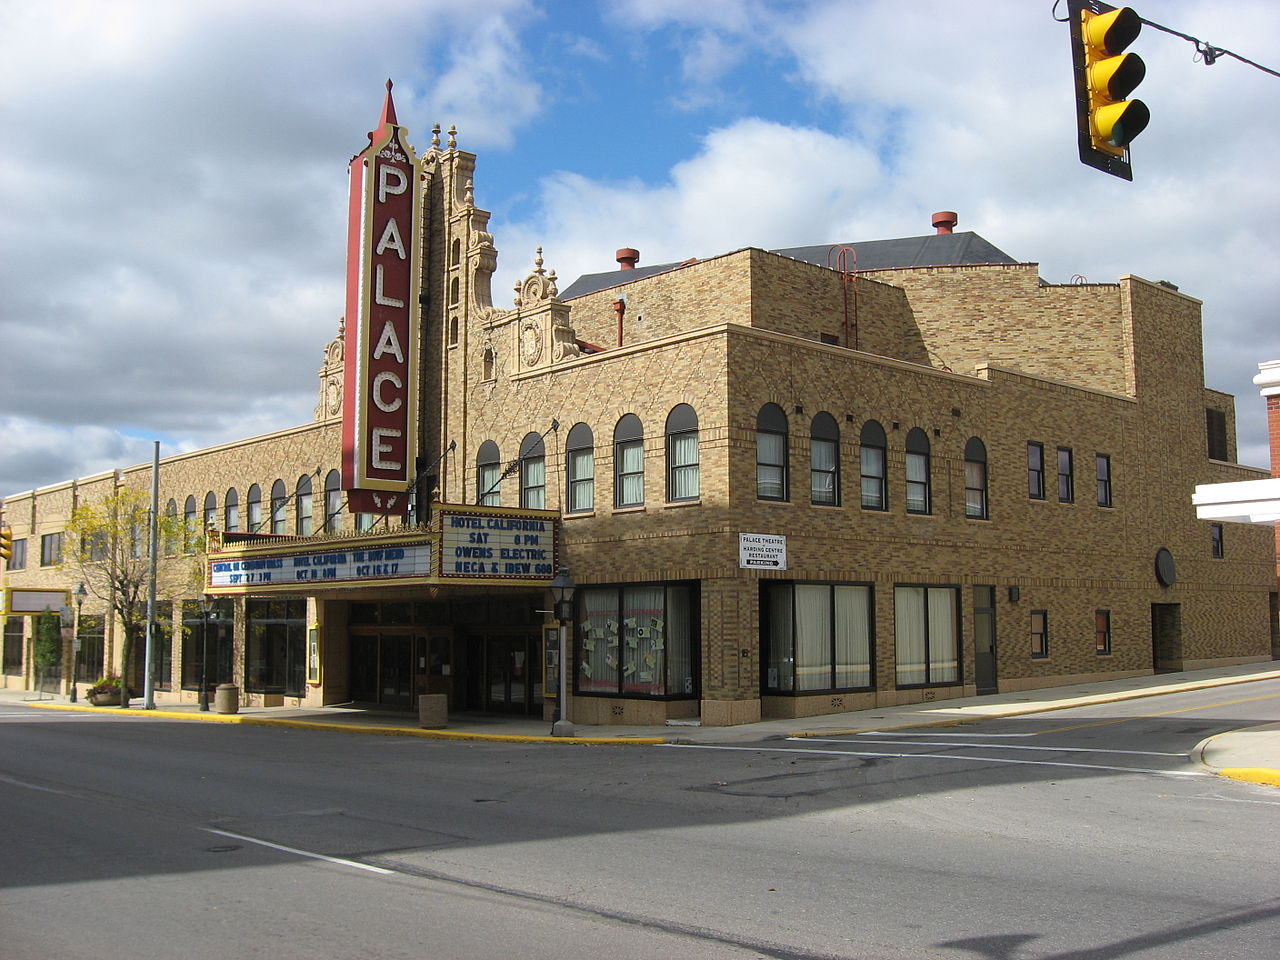 palace movie theater in marion, ohio